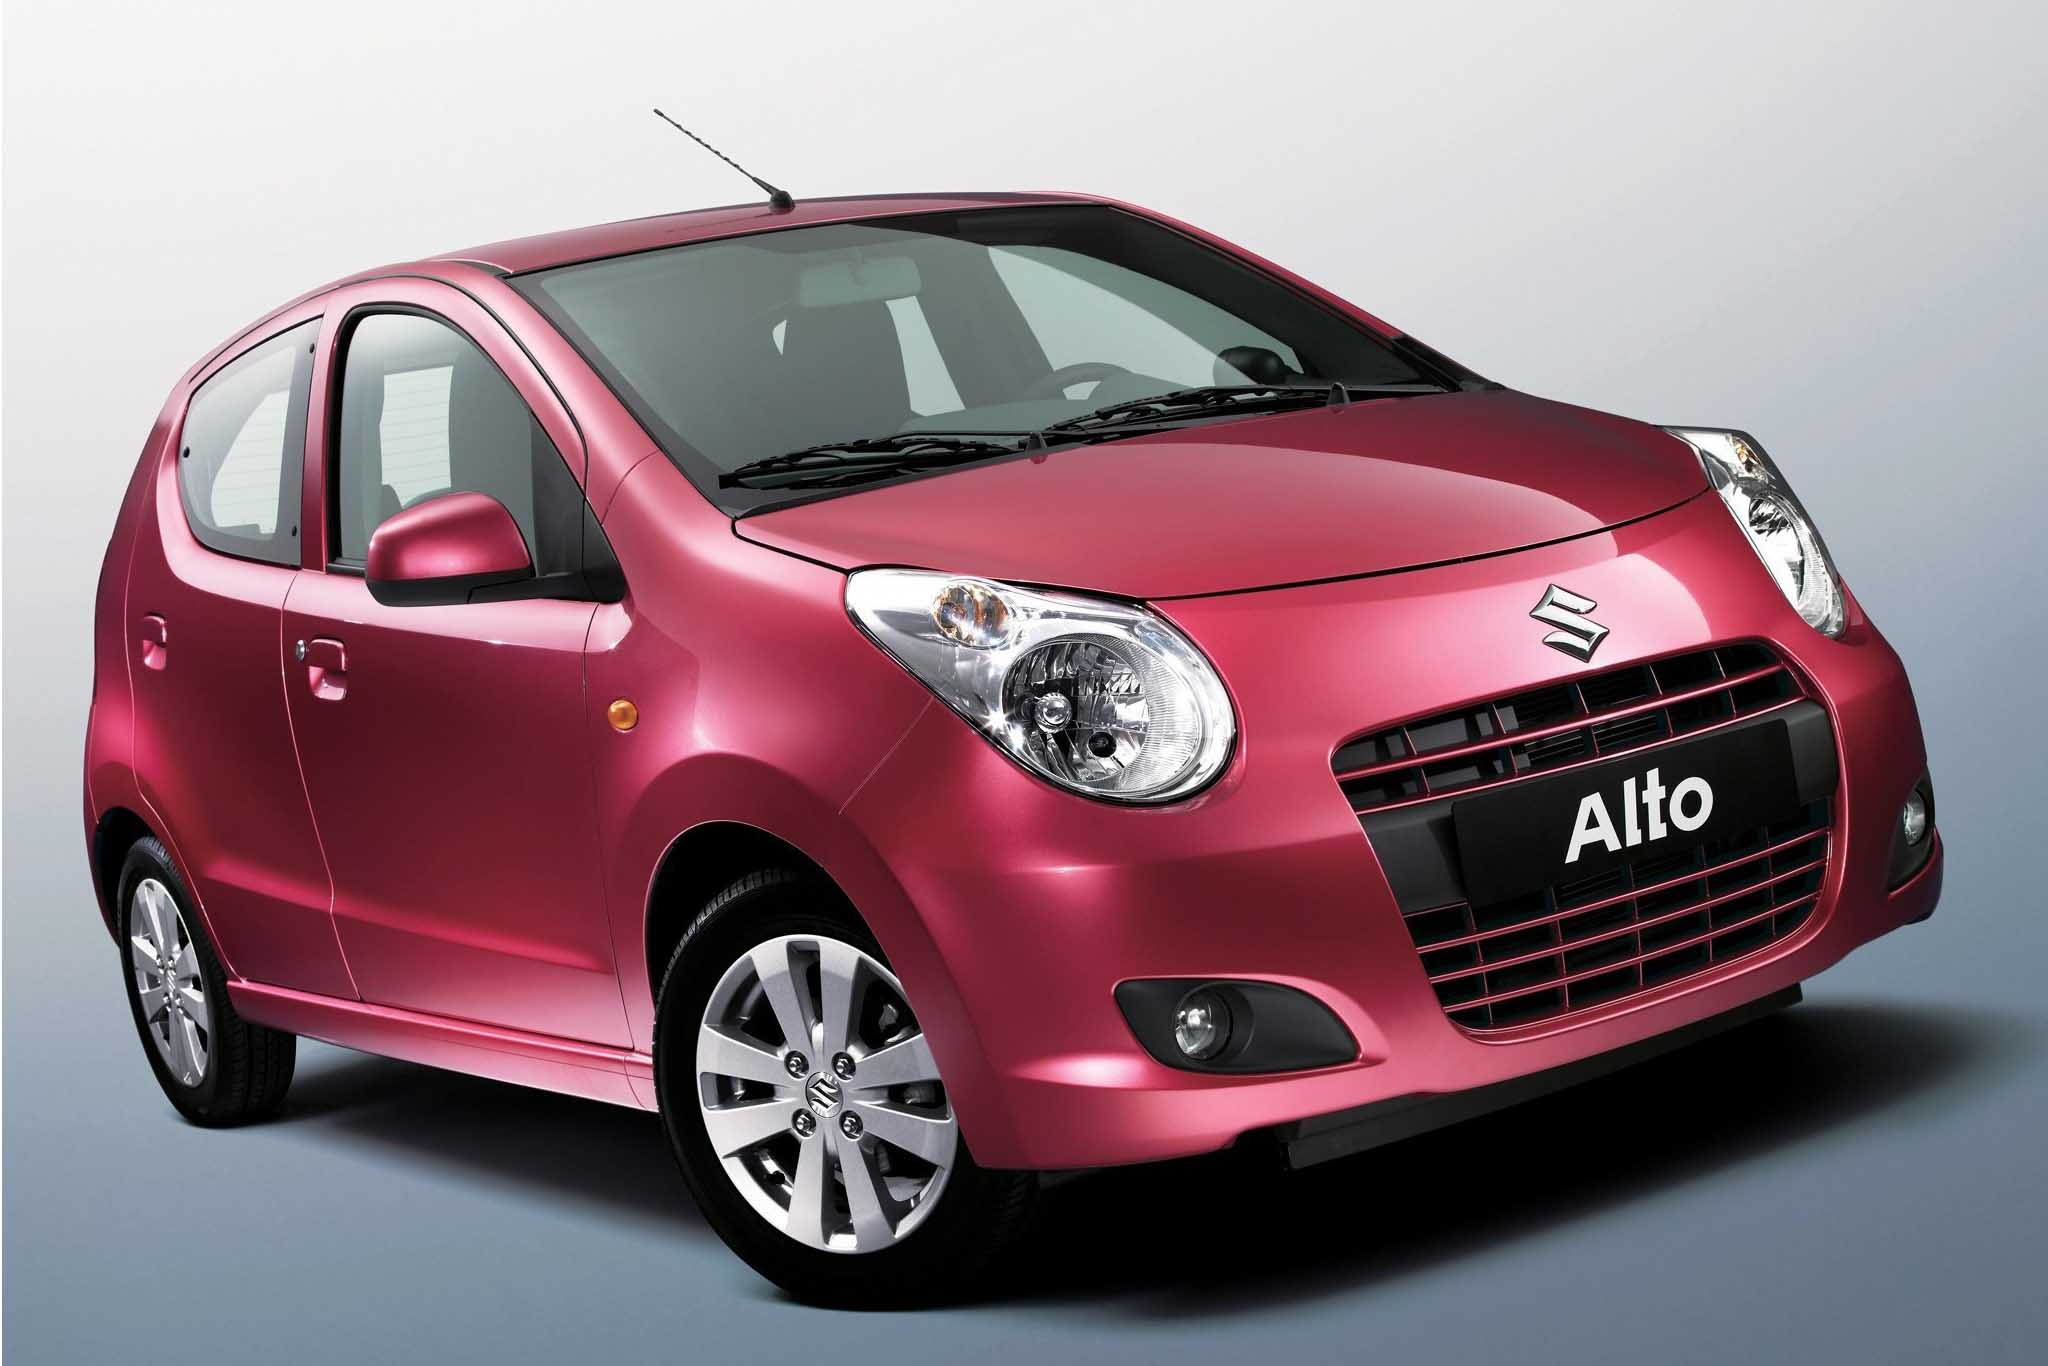 SUZUKI ALTO (or similar)